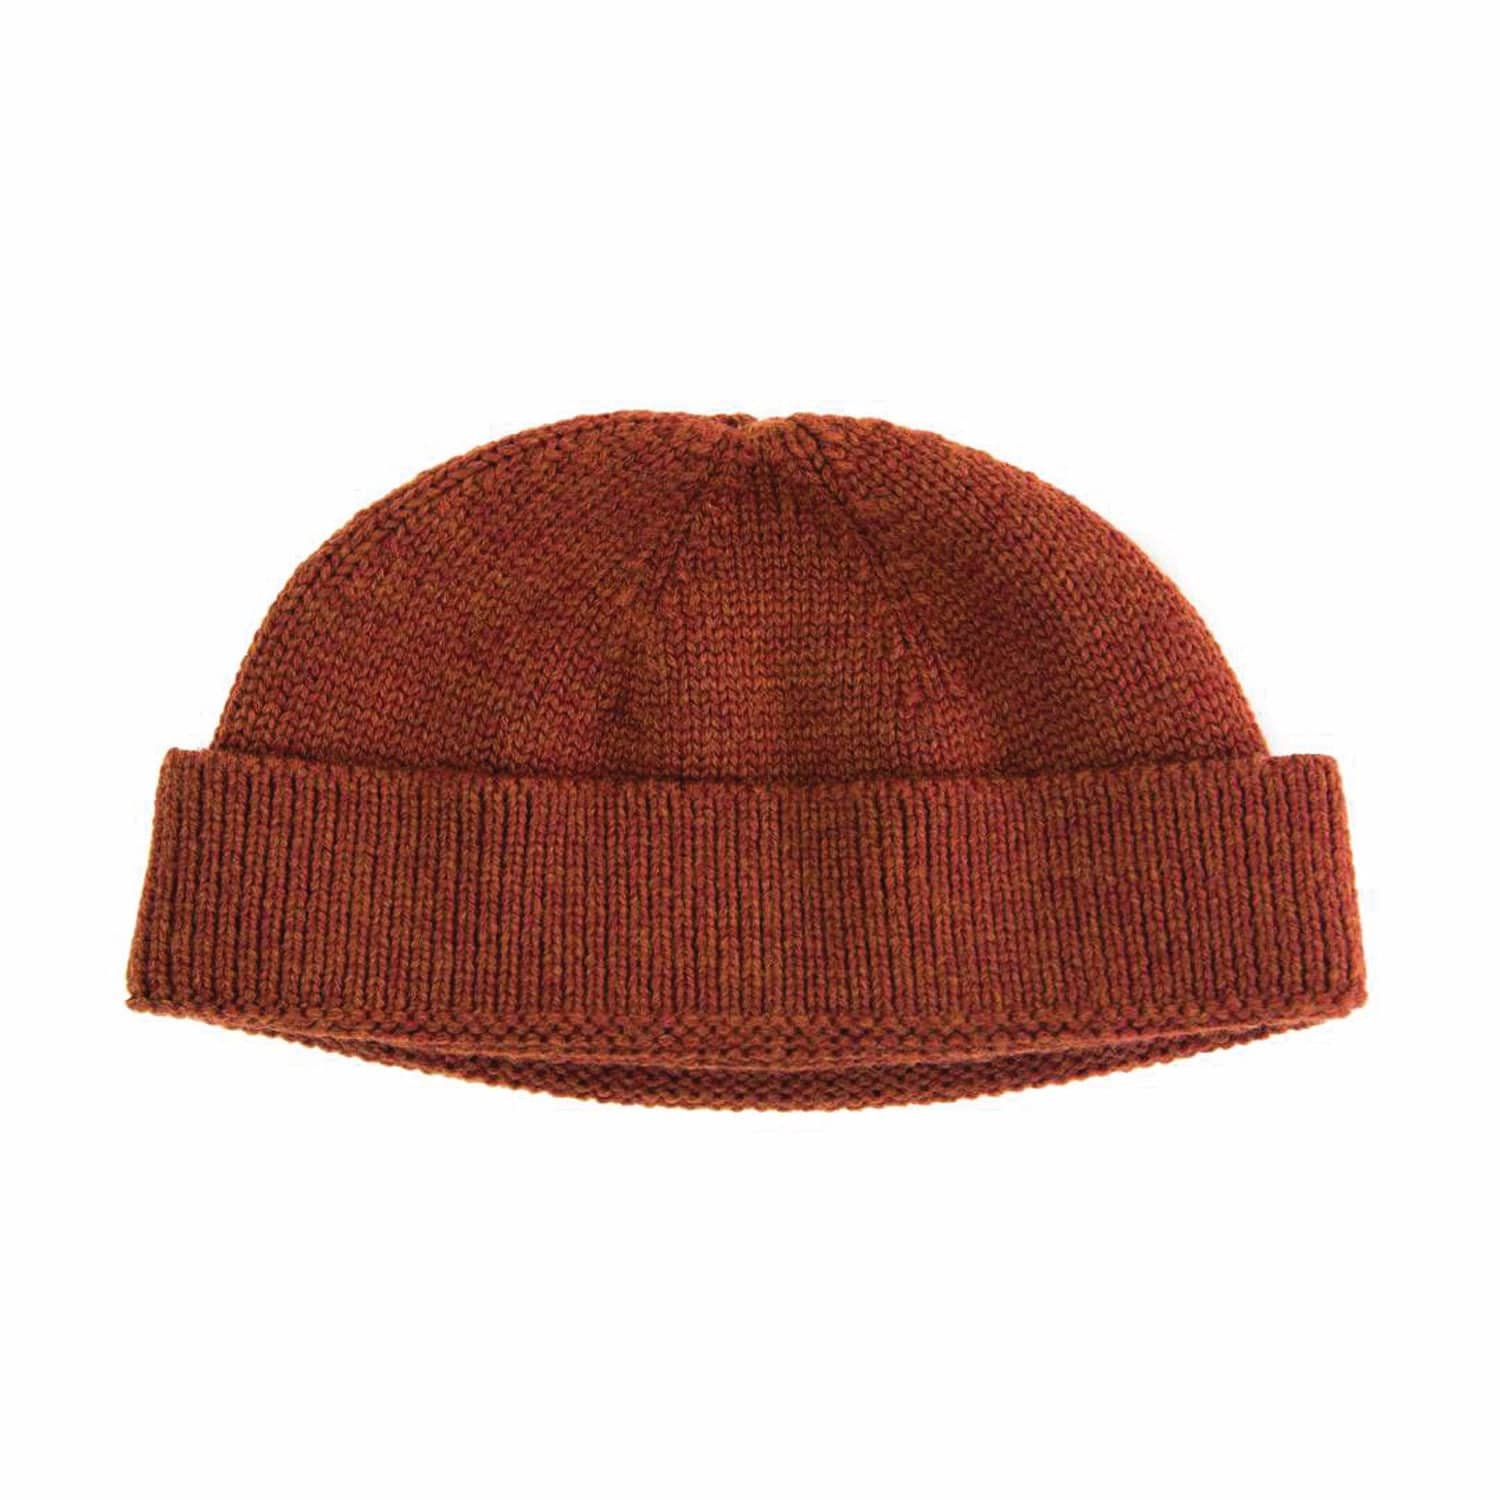 Rust Solid Wool Fisherman Beanie  20738086550